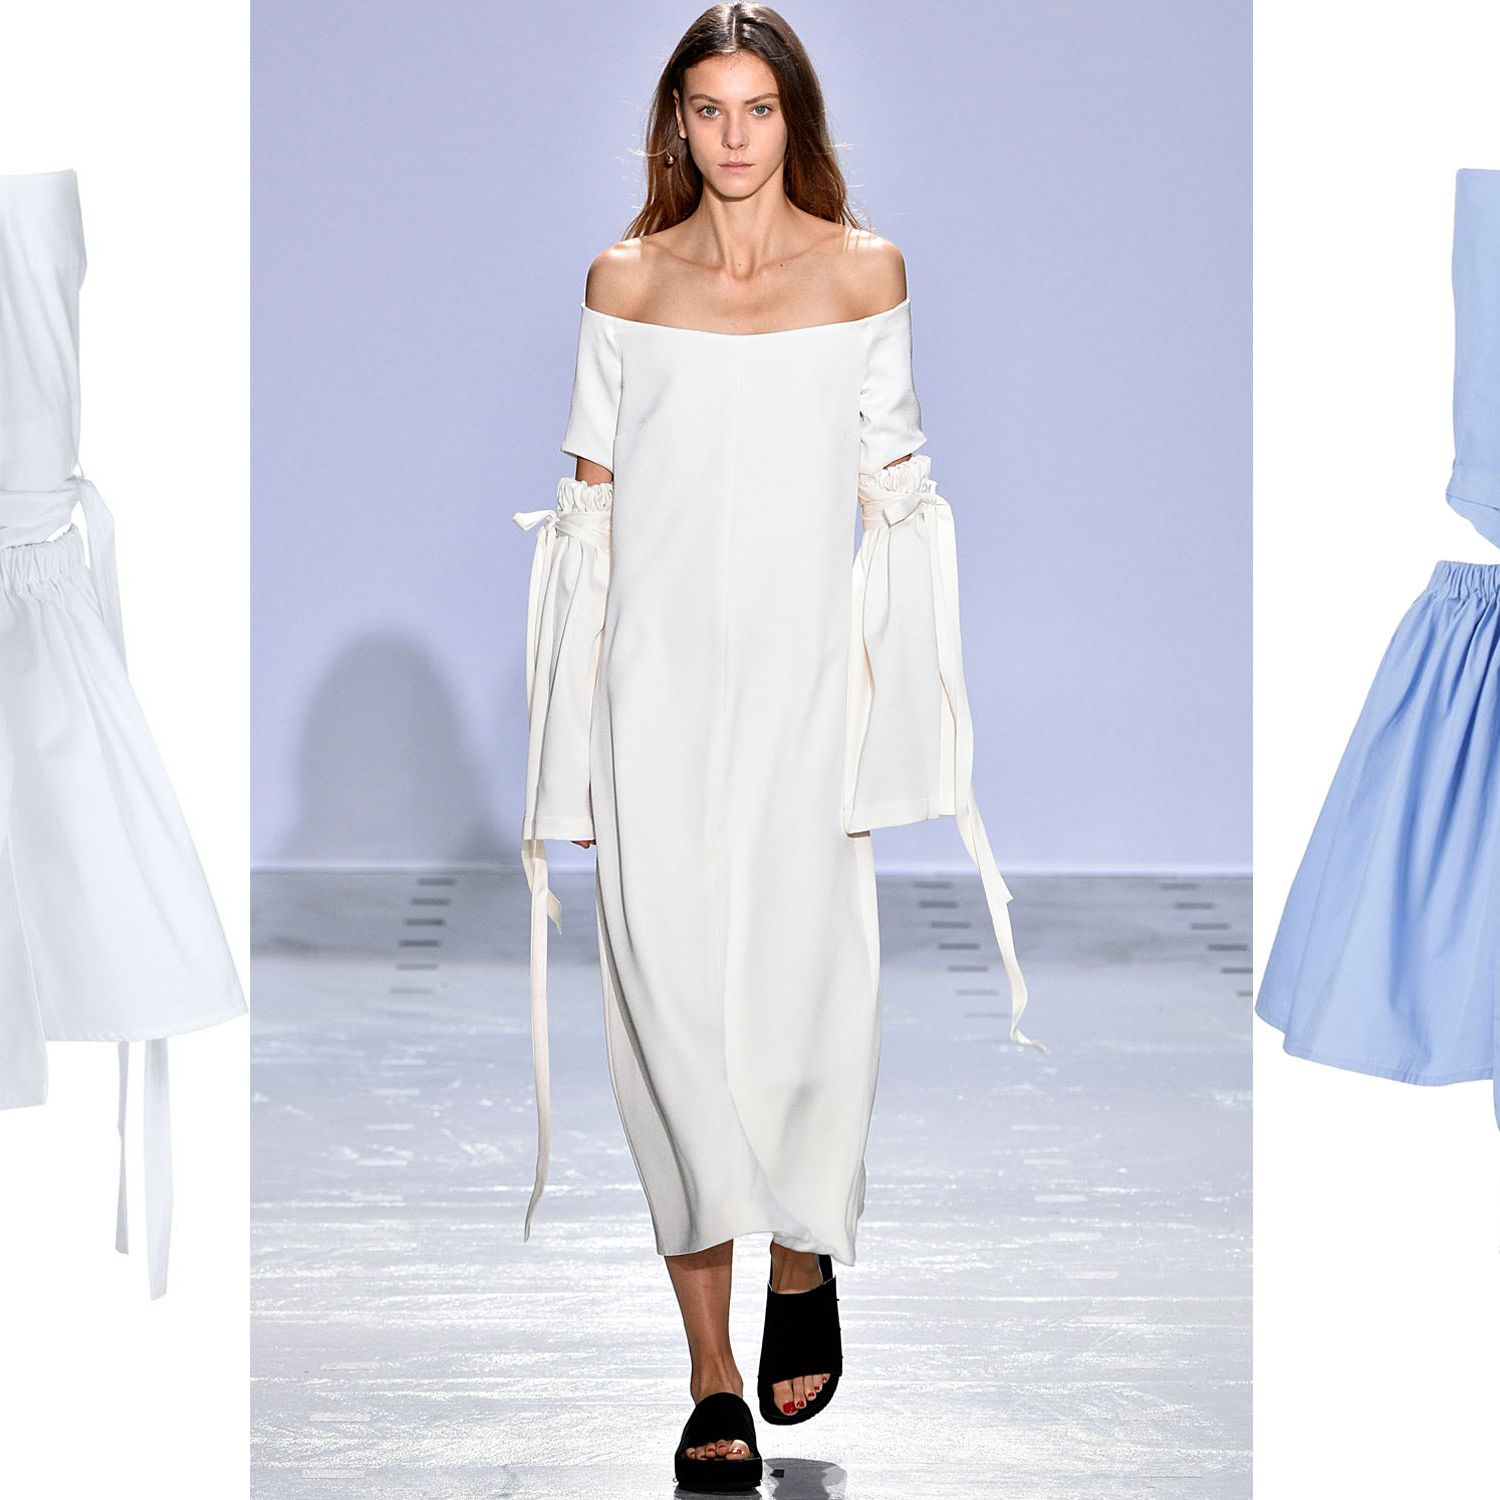 "<p>The most effortless way to show some skin this season is with an off-the-shoulder top. Opt for one with some additional detail to ensure you stand out from the crowd.</p><p><em><strong>Ellery</strong> off-the-shoulder top in white, $700, <strong><a href=""https://shop.harpersbazaar.com/designers/e/ellery/off-shoulder-elbow-cut-top-9008.html"" target=""_blank"">shopBAZAAR.com</a></strong>&#x3B; <strong>Ellery</strong> off-the-shoulder top in blue, $700, <strong><a href=""https://shop.harpersbazaar.com/designers/e/ellery/off-shoulder-elbow-cut-top-blue-8989.html"" target=""_blank"">shopBAZAAR.com</a></strong>. </em></p>"